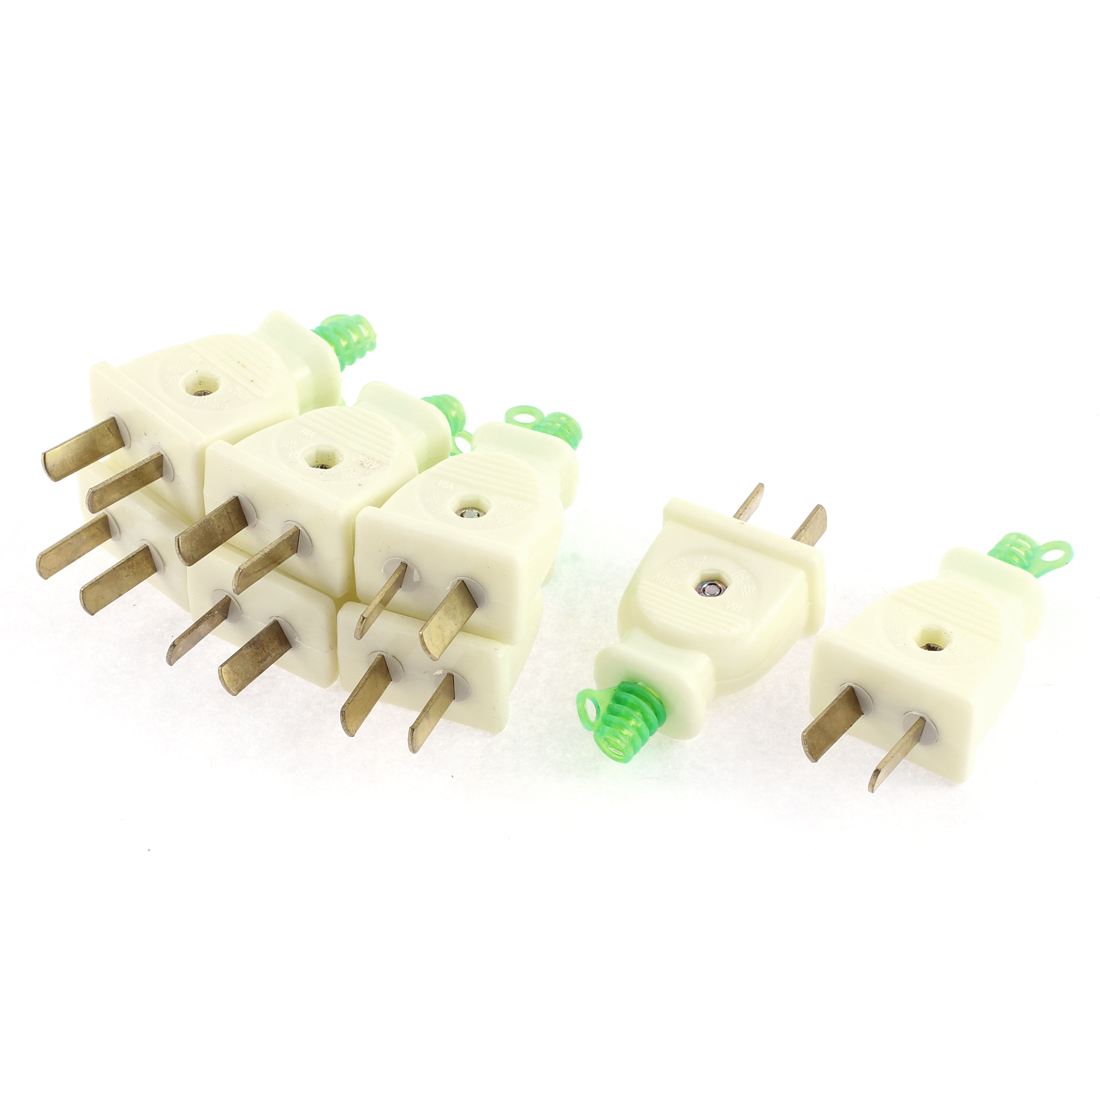 AC 250V 16A AU US 2 Pin Rotary Power Plug Adapter Connector 8 Pcs